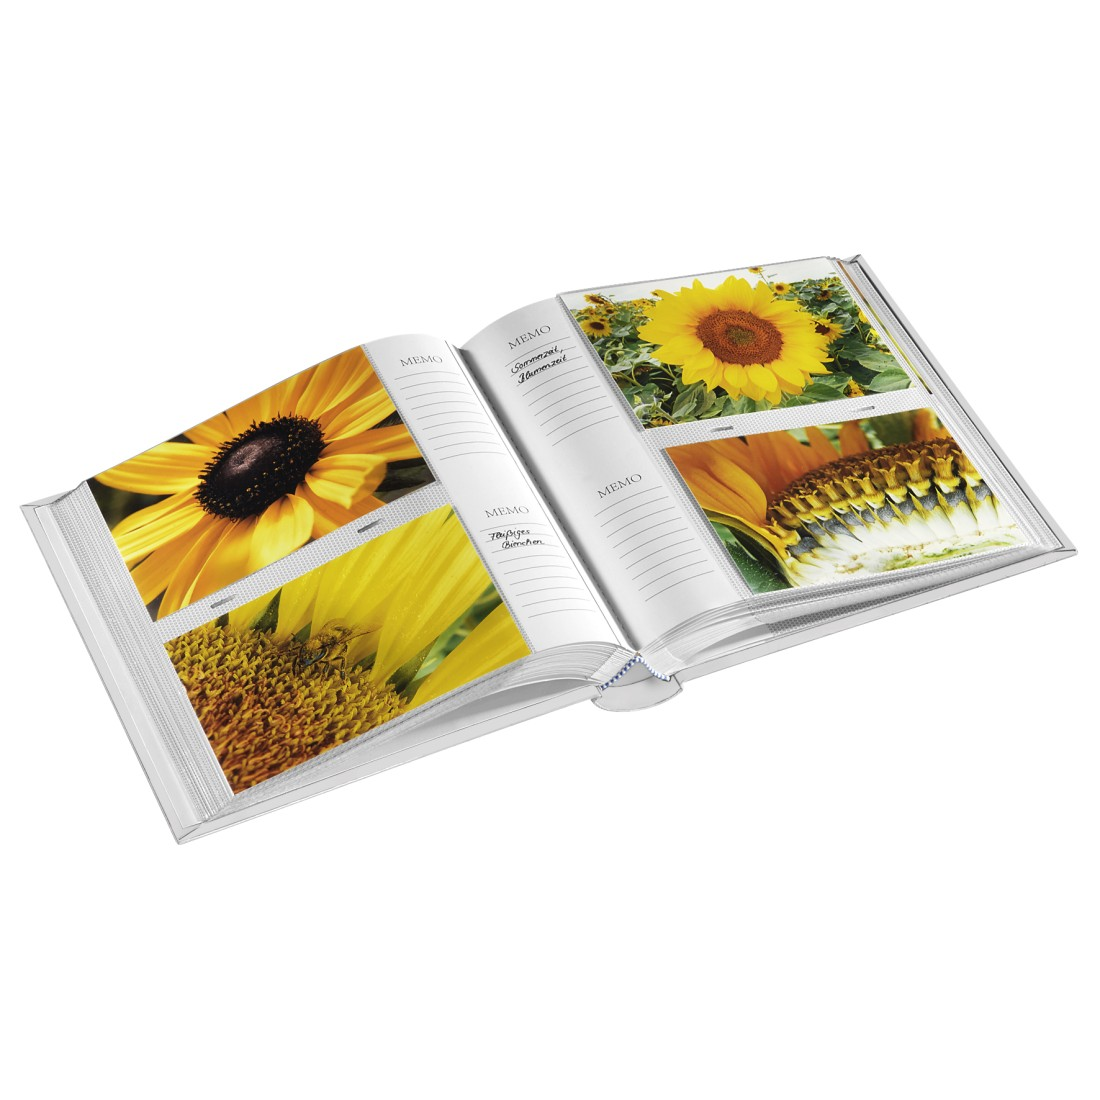 "awx High-Res Appliance - Hama, ""Andria"" Memo Album, for 200 photos with a size of 10x15 cm, white"